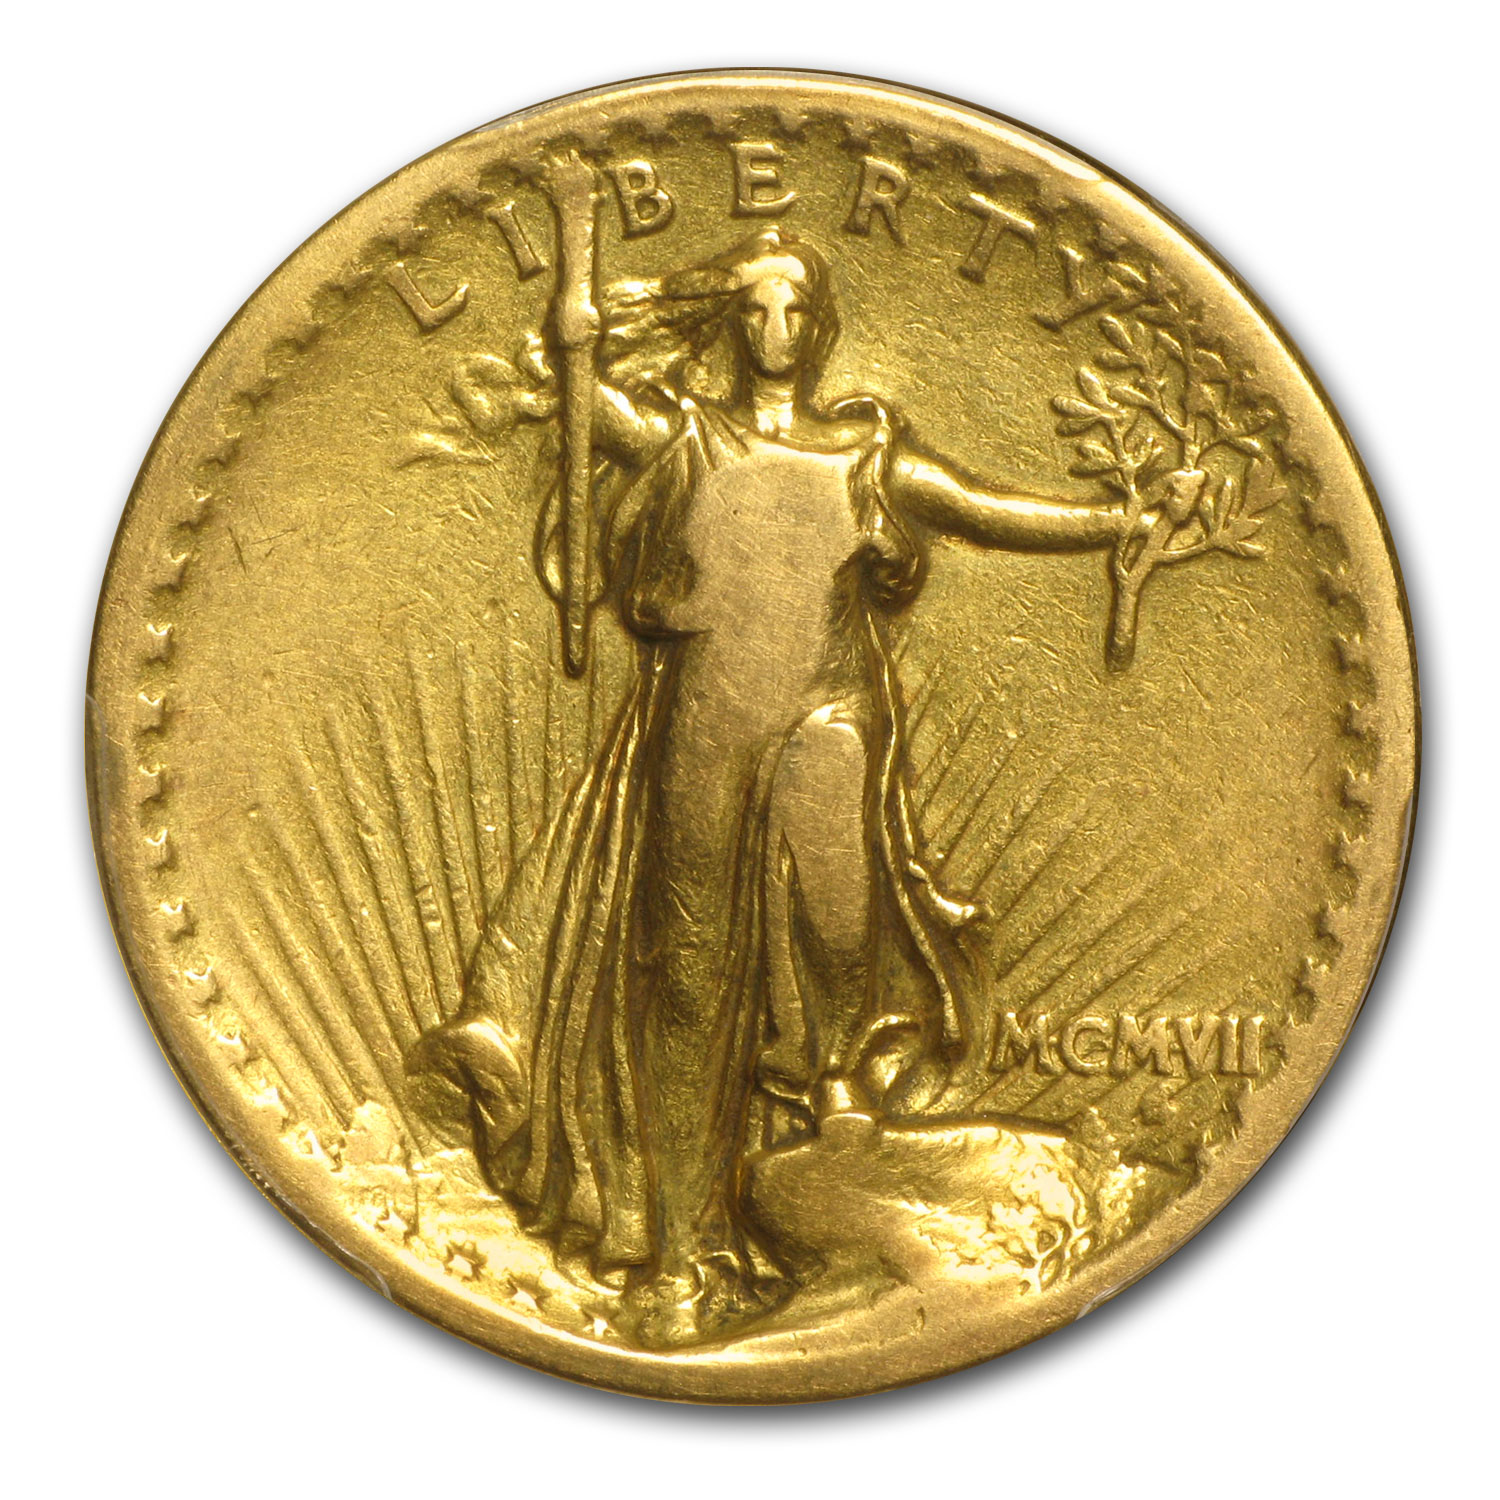 1907 $20 St. Gaudens Gold - High Relief Flat Rim - VG Detail PCGS